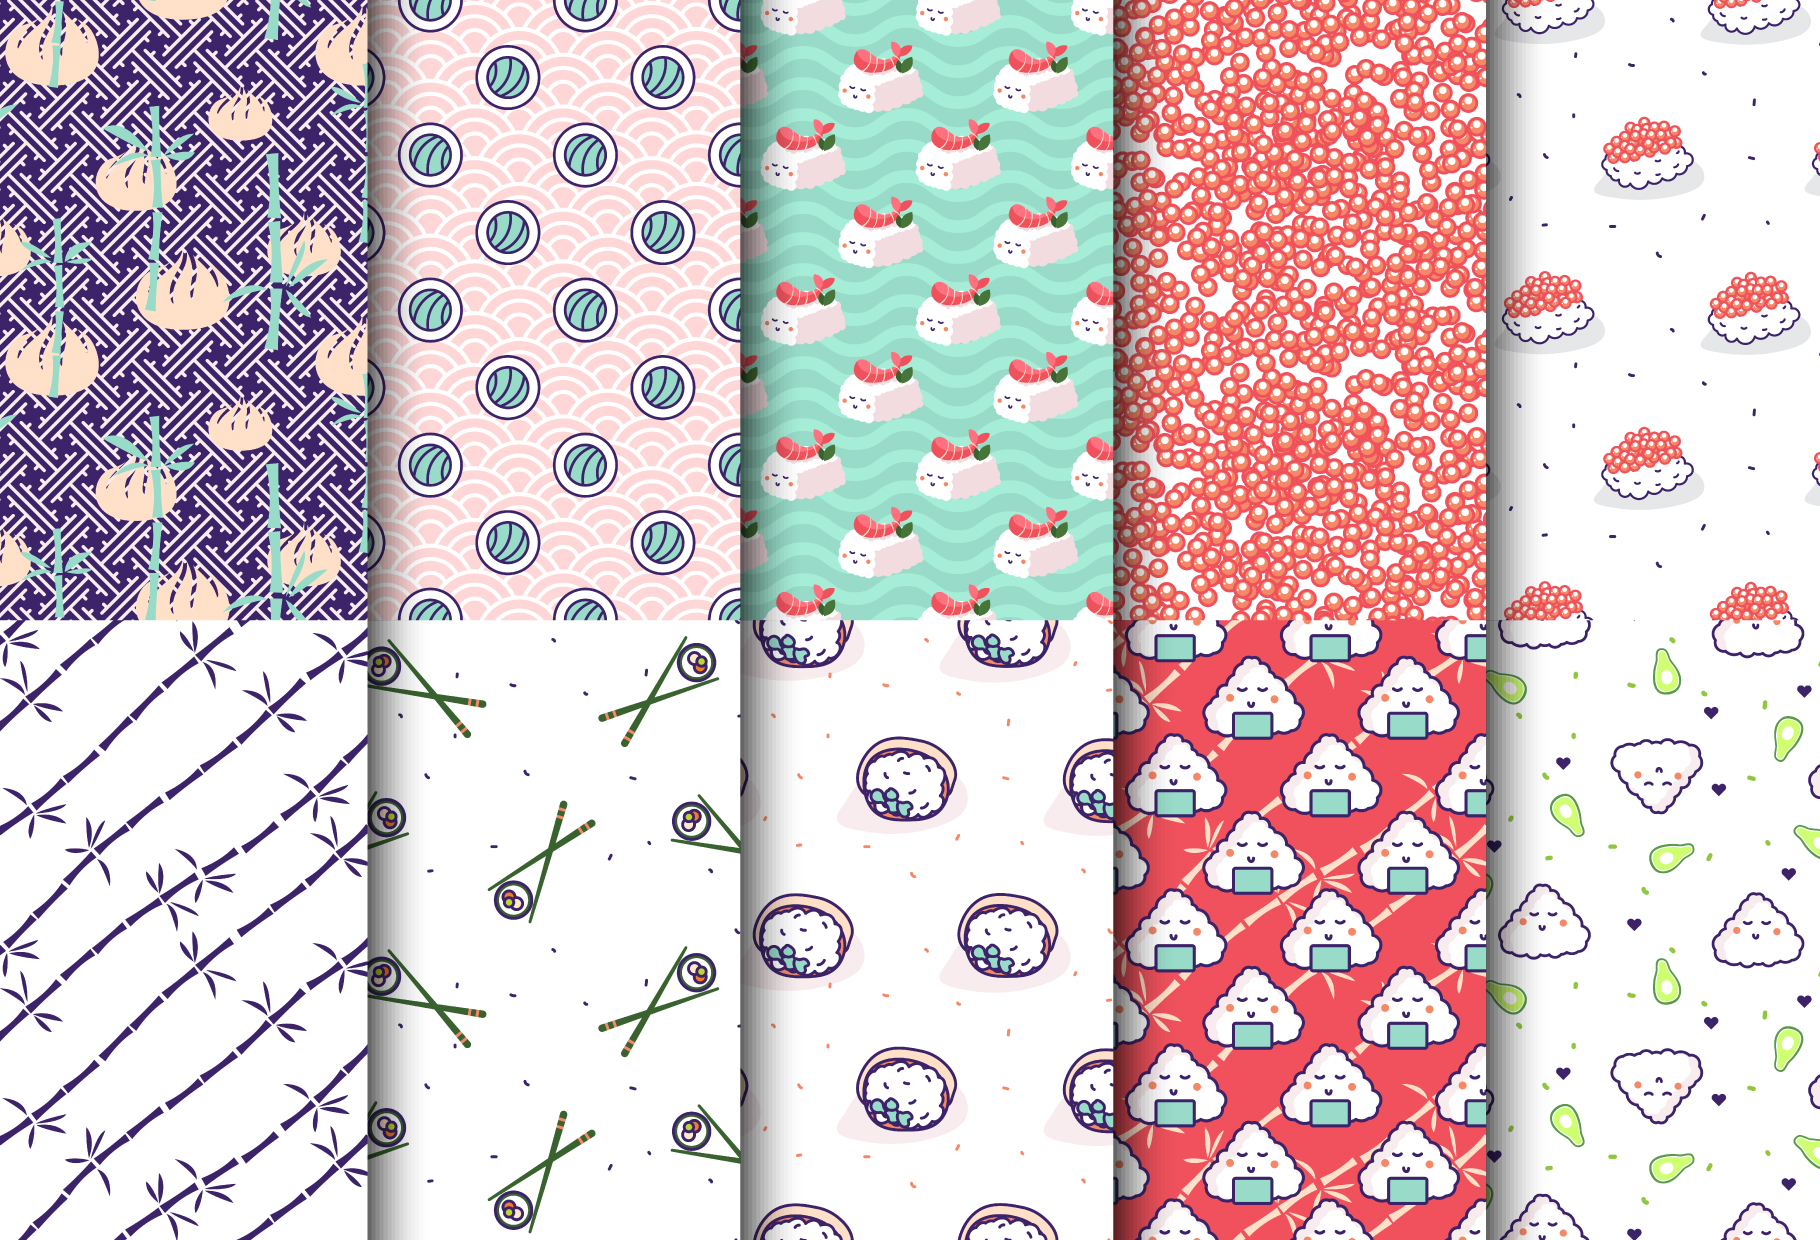 Sushi - Seamless Patterns